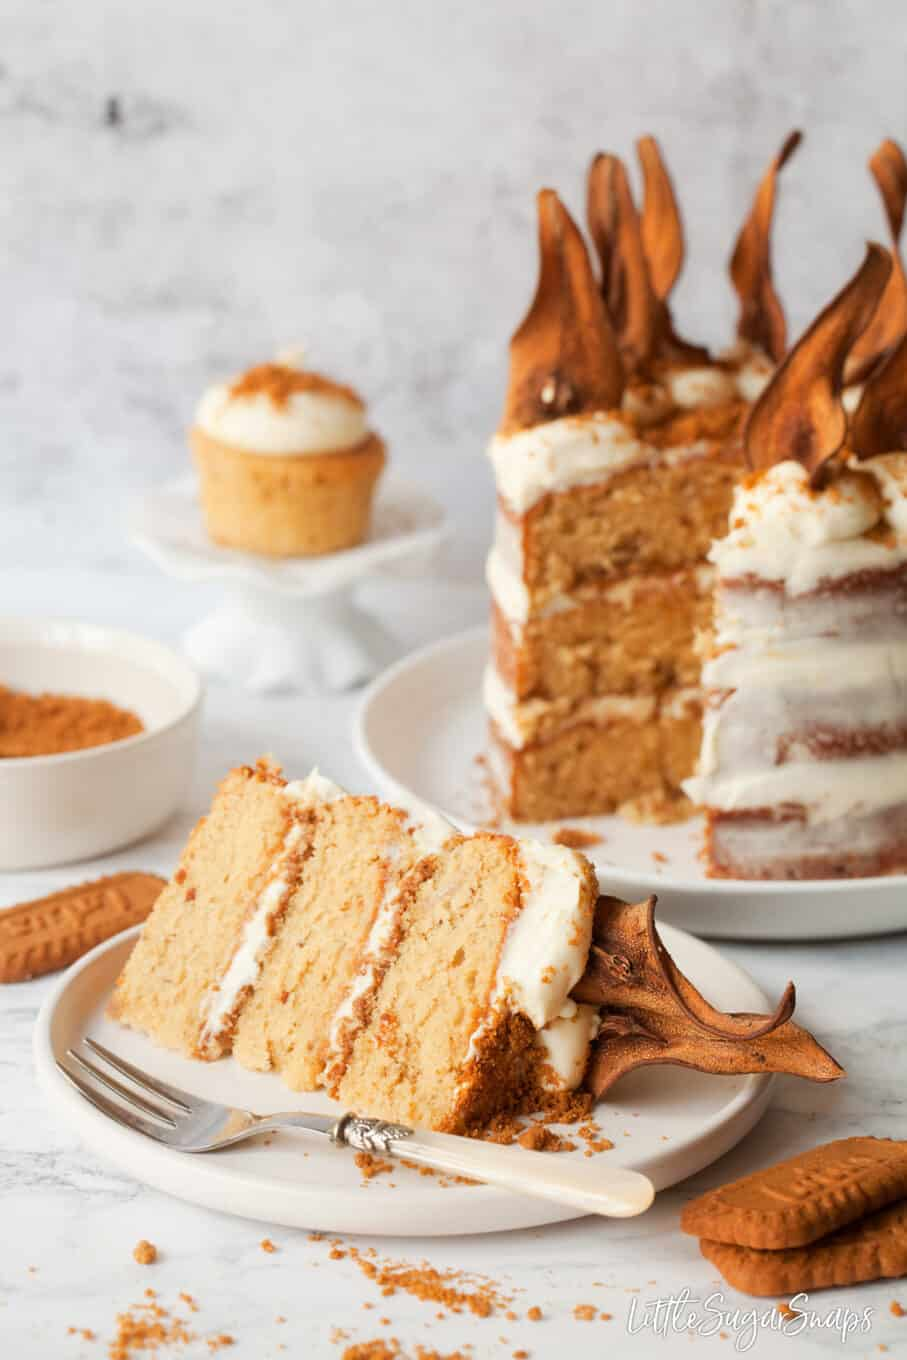 A slice of Biscoff cake on a plate with the cut cake behind.